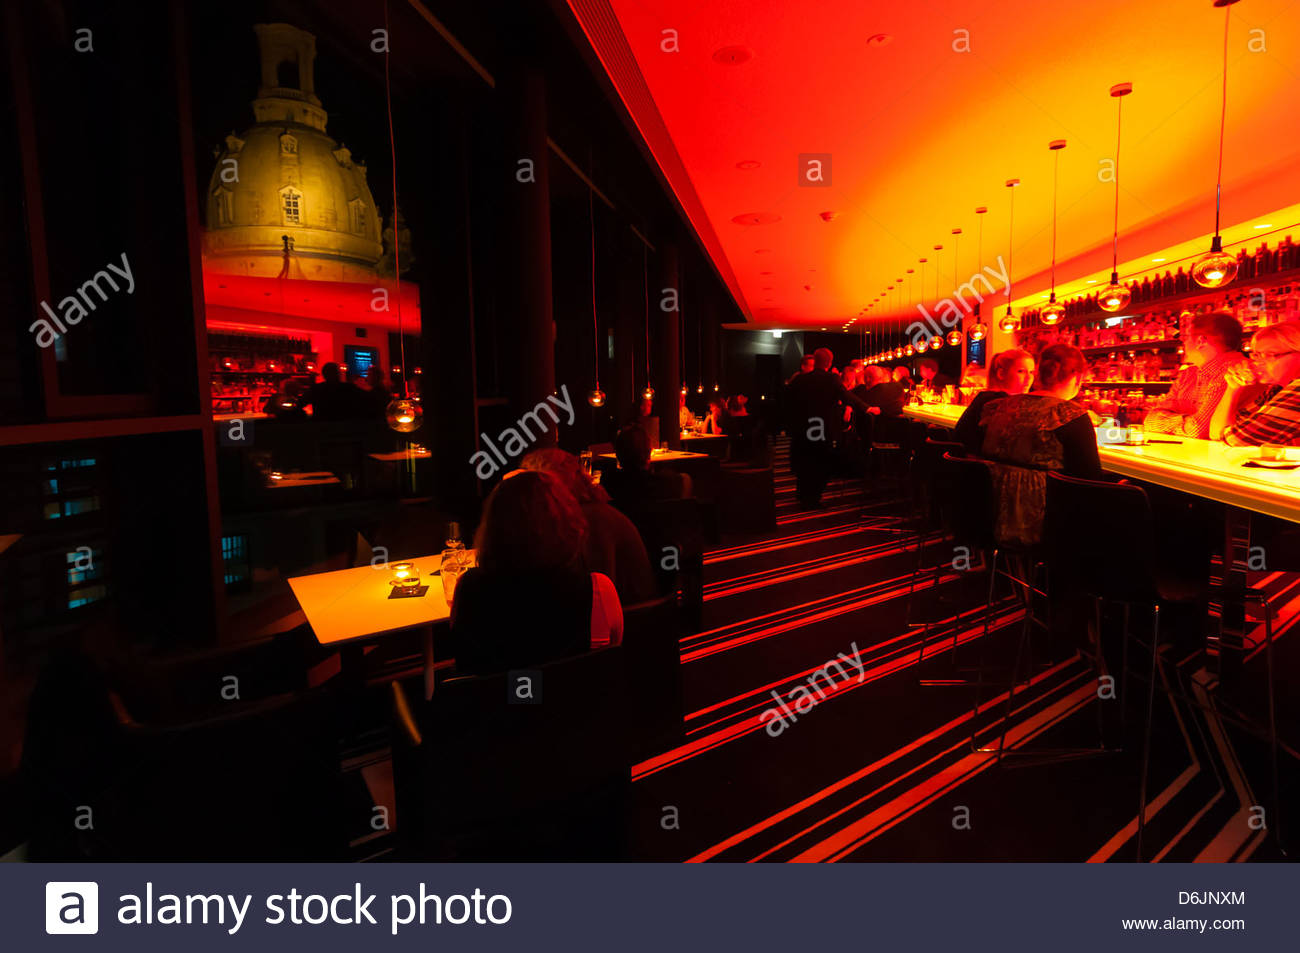 The Sky Bar atop the Innside by Melia Hotel with the Frauenkirche (church) in background, Dresden, Saxony, Germany Stock Photo